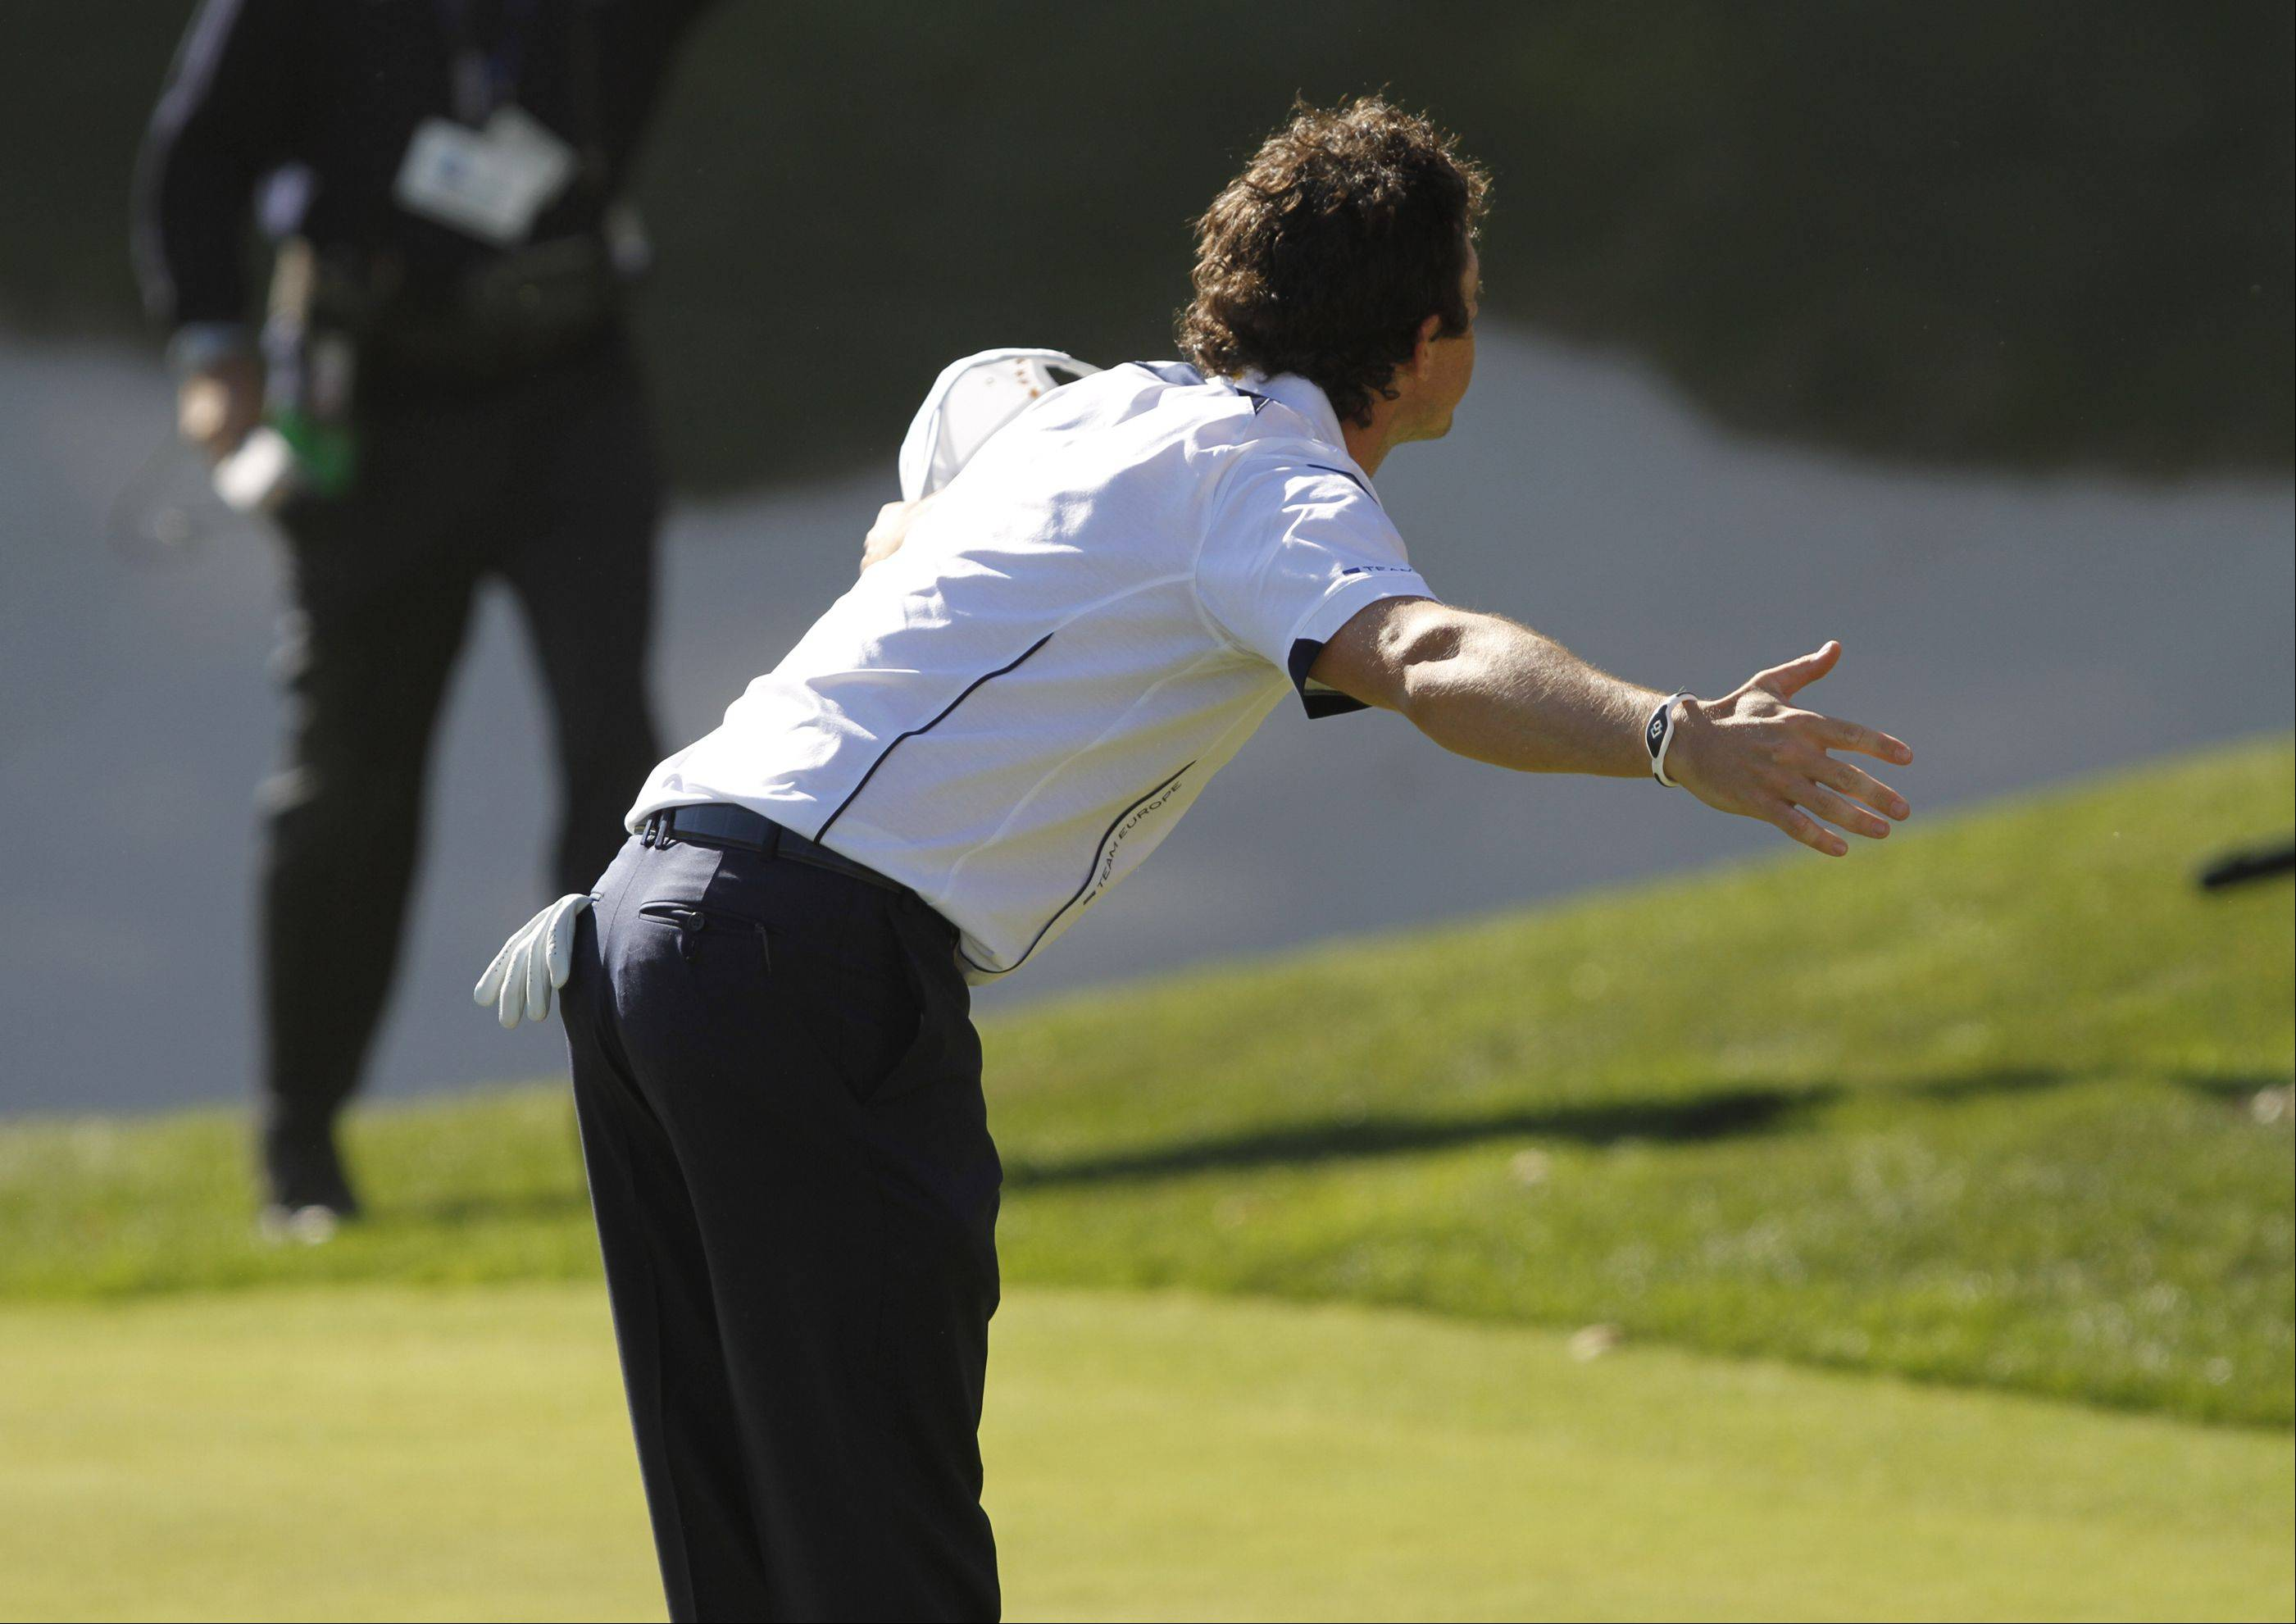 Rory McIlroy bows to the crowd at the 17th hole after defeating Keegan Bradley and taking a point for Europe Sunday during the final day of the 2012 Ryder Cup at Medinah Country Club.